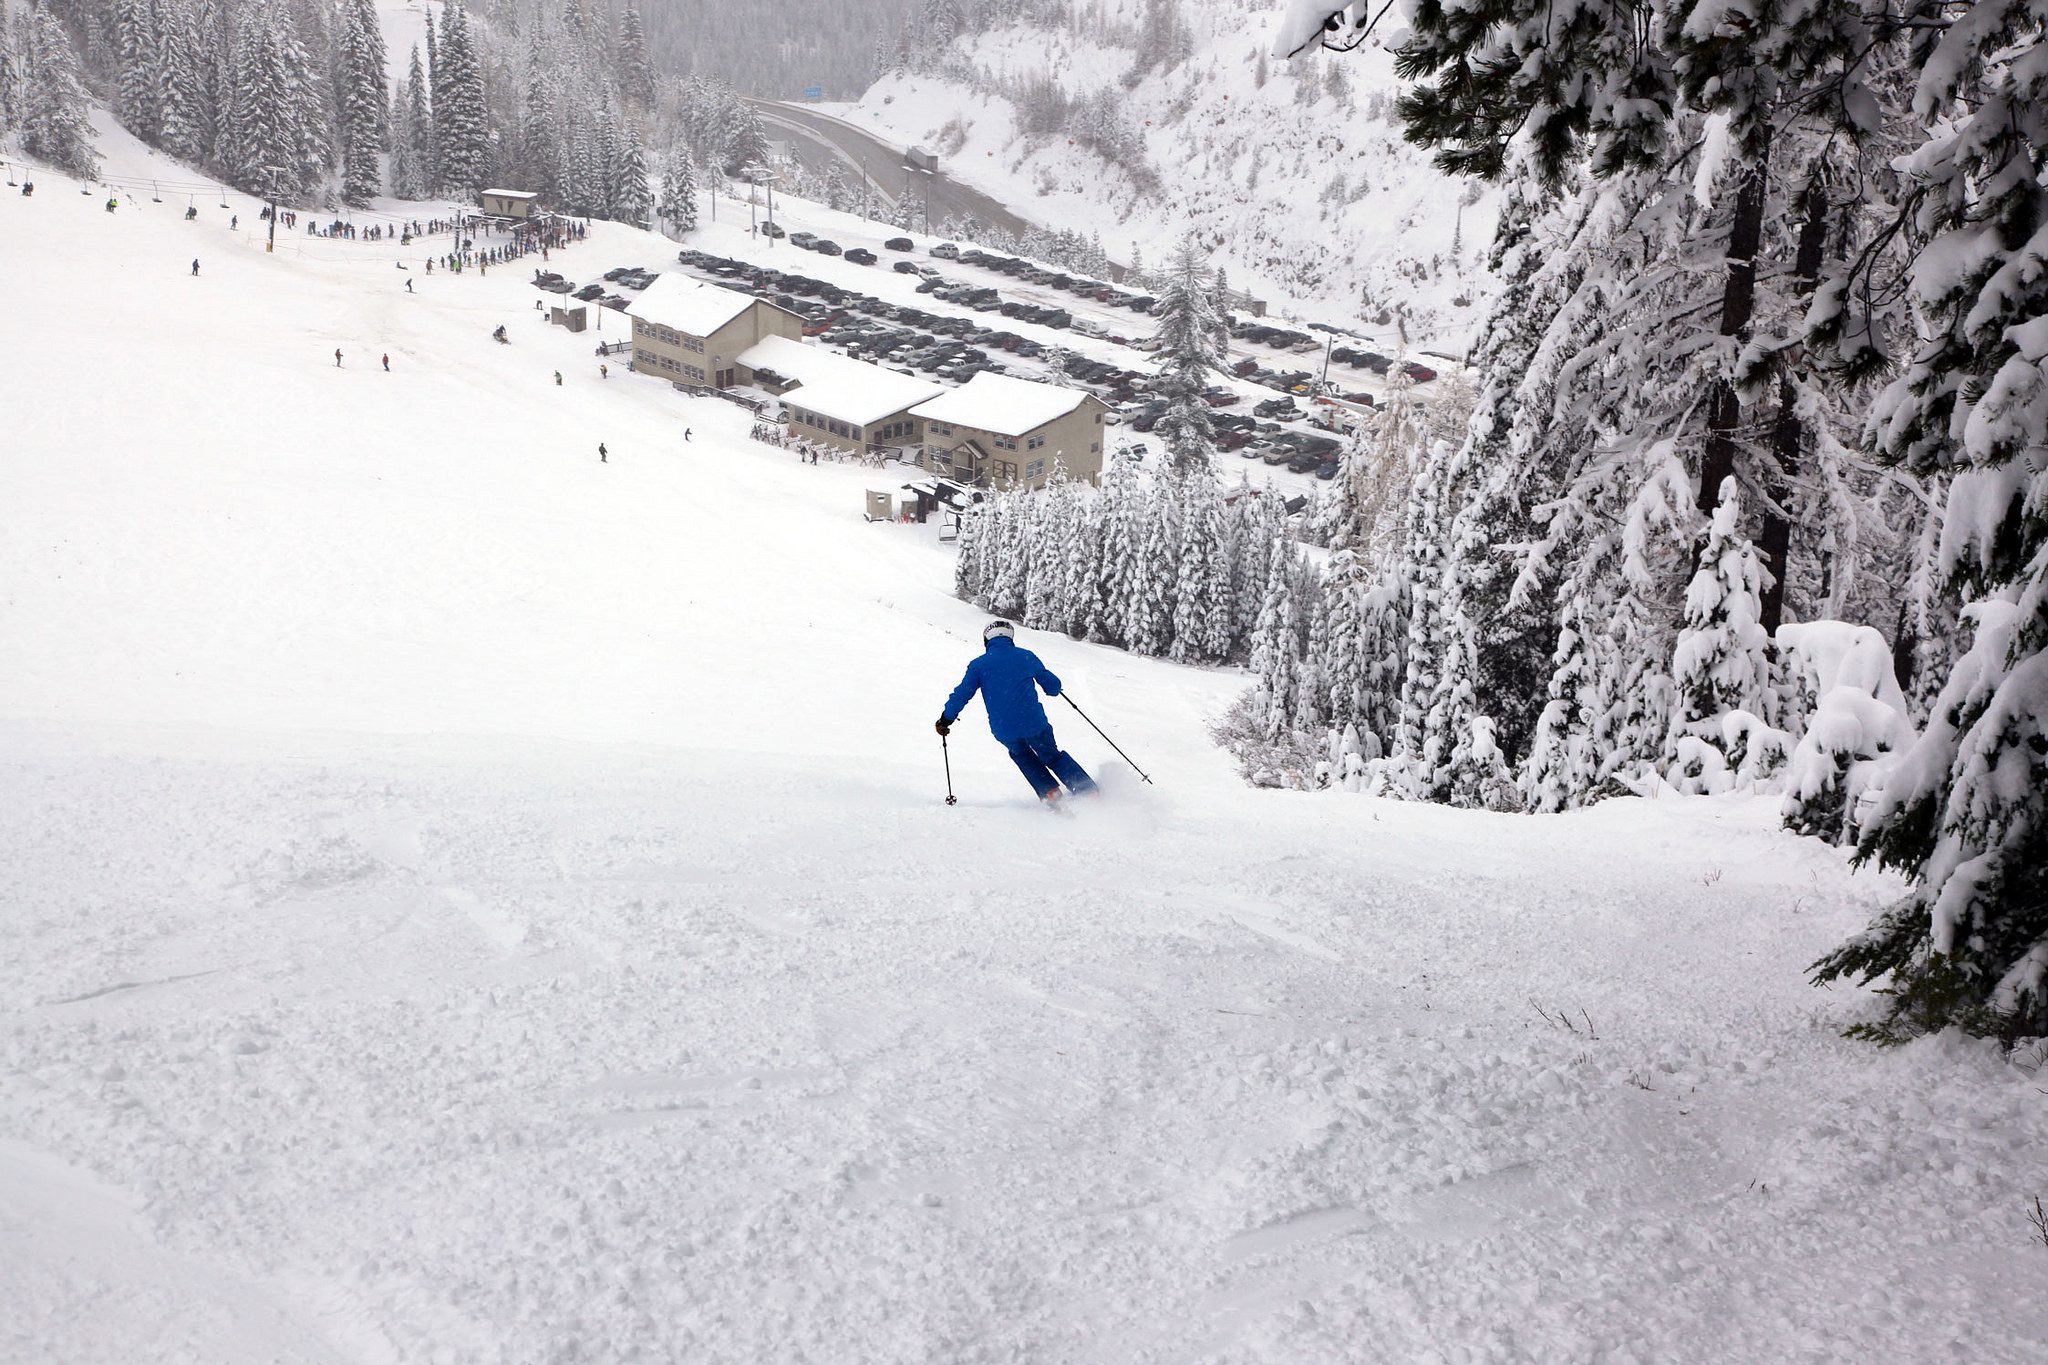 Ski season in Idaho has officially started! Lookout Pass in northern Idaho is the second ski resort in the northwest to open up and the first in Idaho, Montana or Washington. It currently has 16 inches of snow at the base and 28 inches at the summit. (Courtesy Tony Harrison)